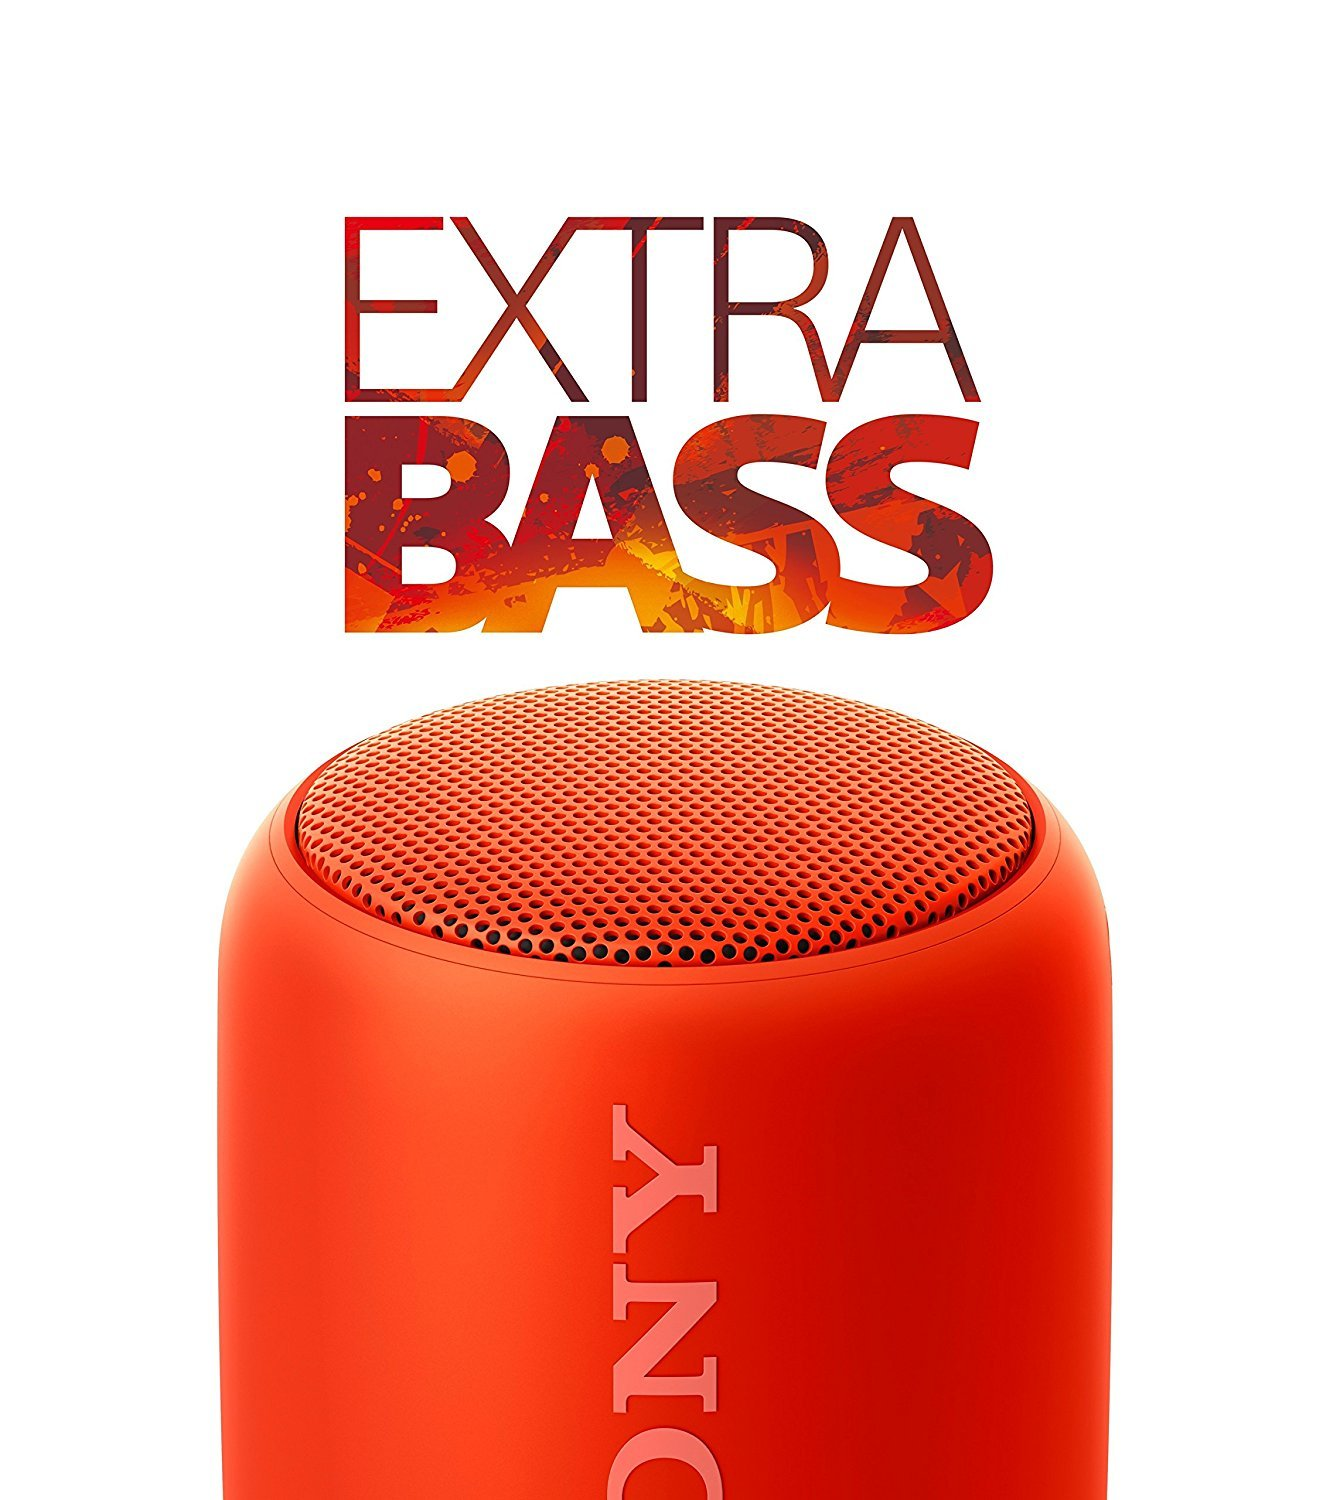 Sony SRS-XB10 Portable Wireless Speakers - Red image